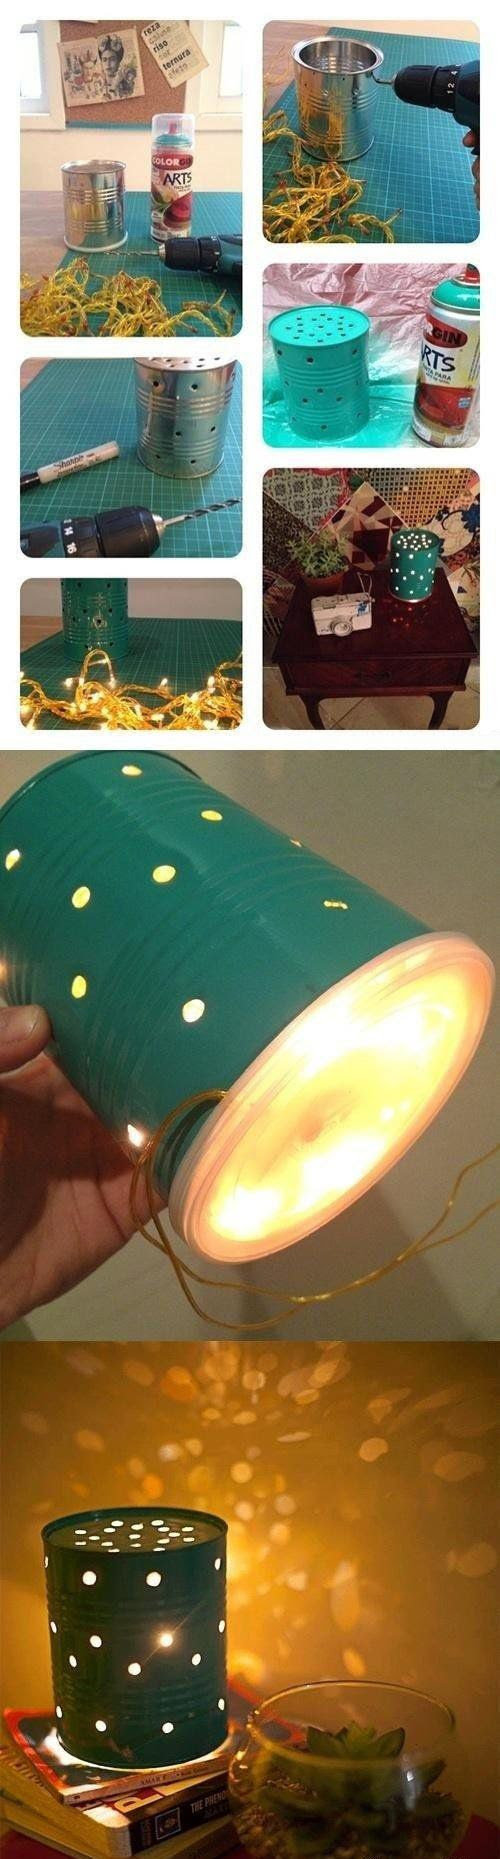 How to create a decorative lamp, OR could make a lampshade for an existing lamp??